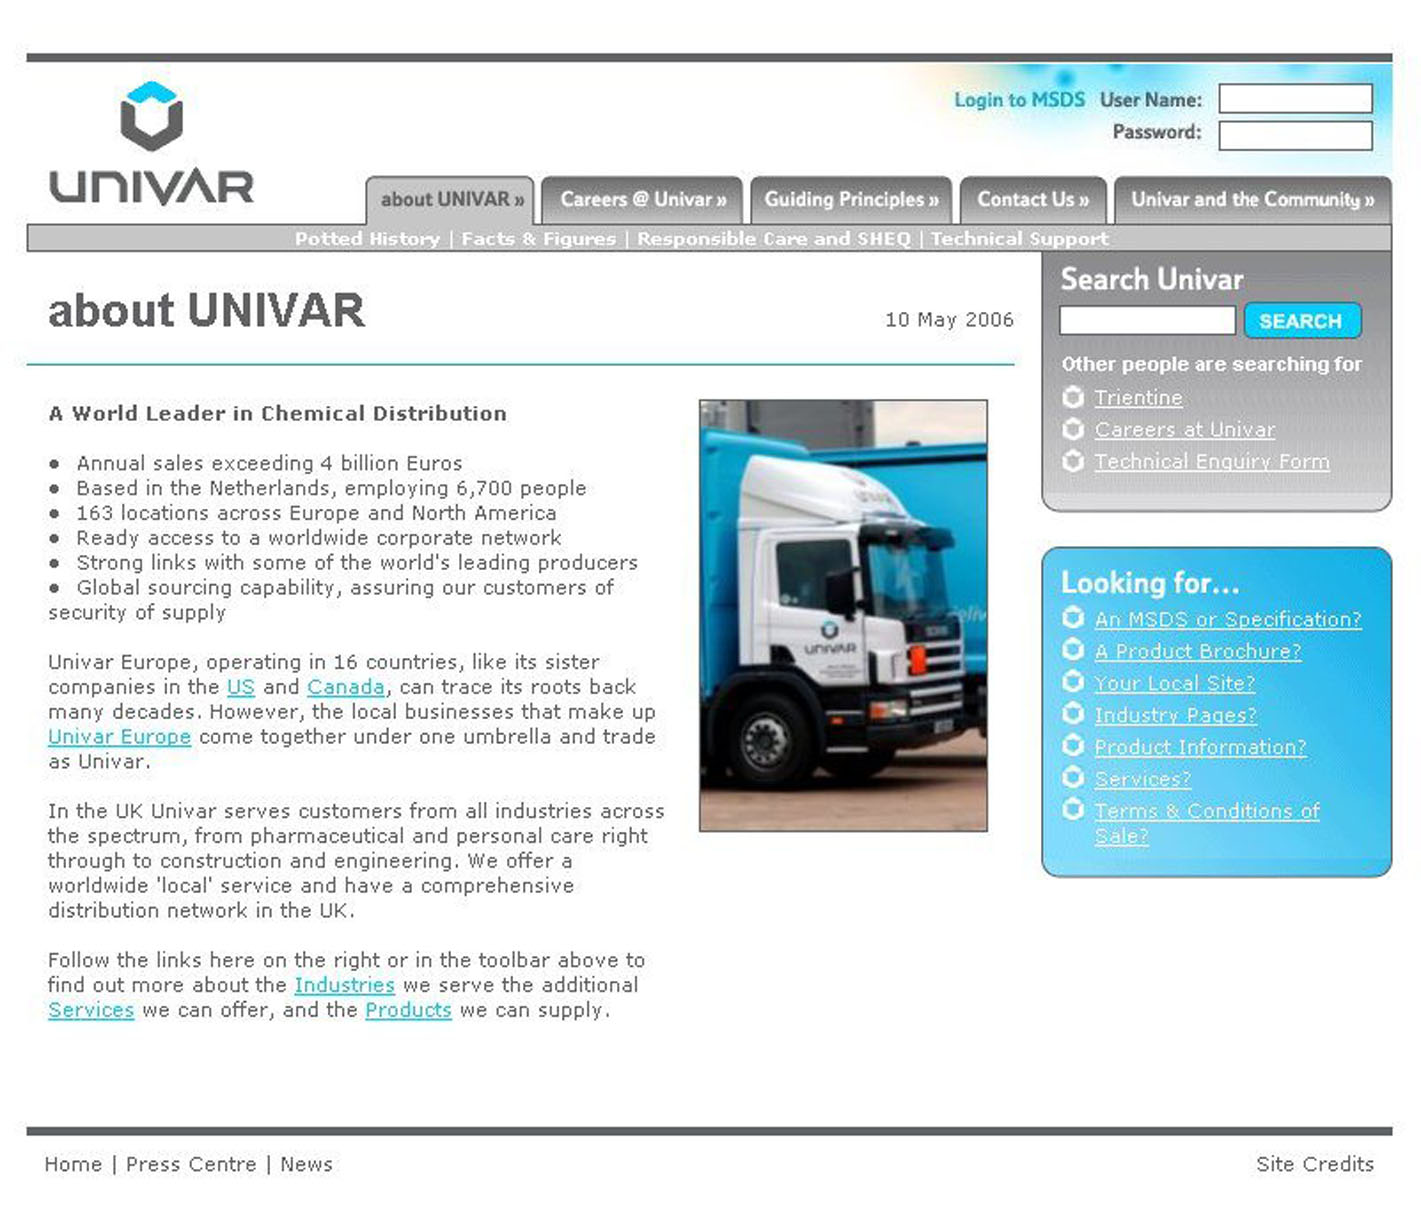 Upgraded website offers easy access to Univar's breadth and